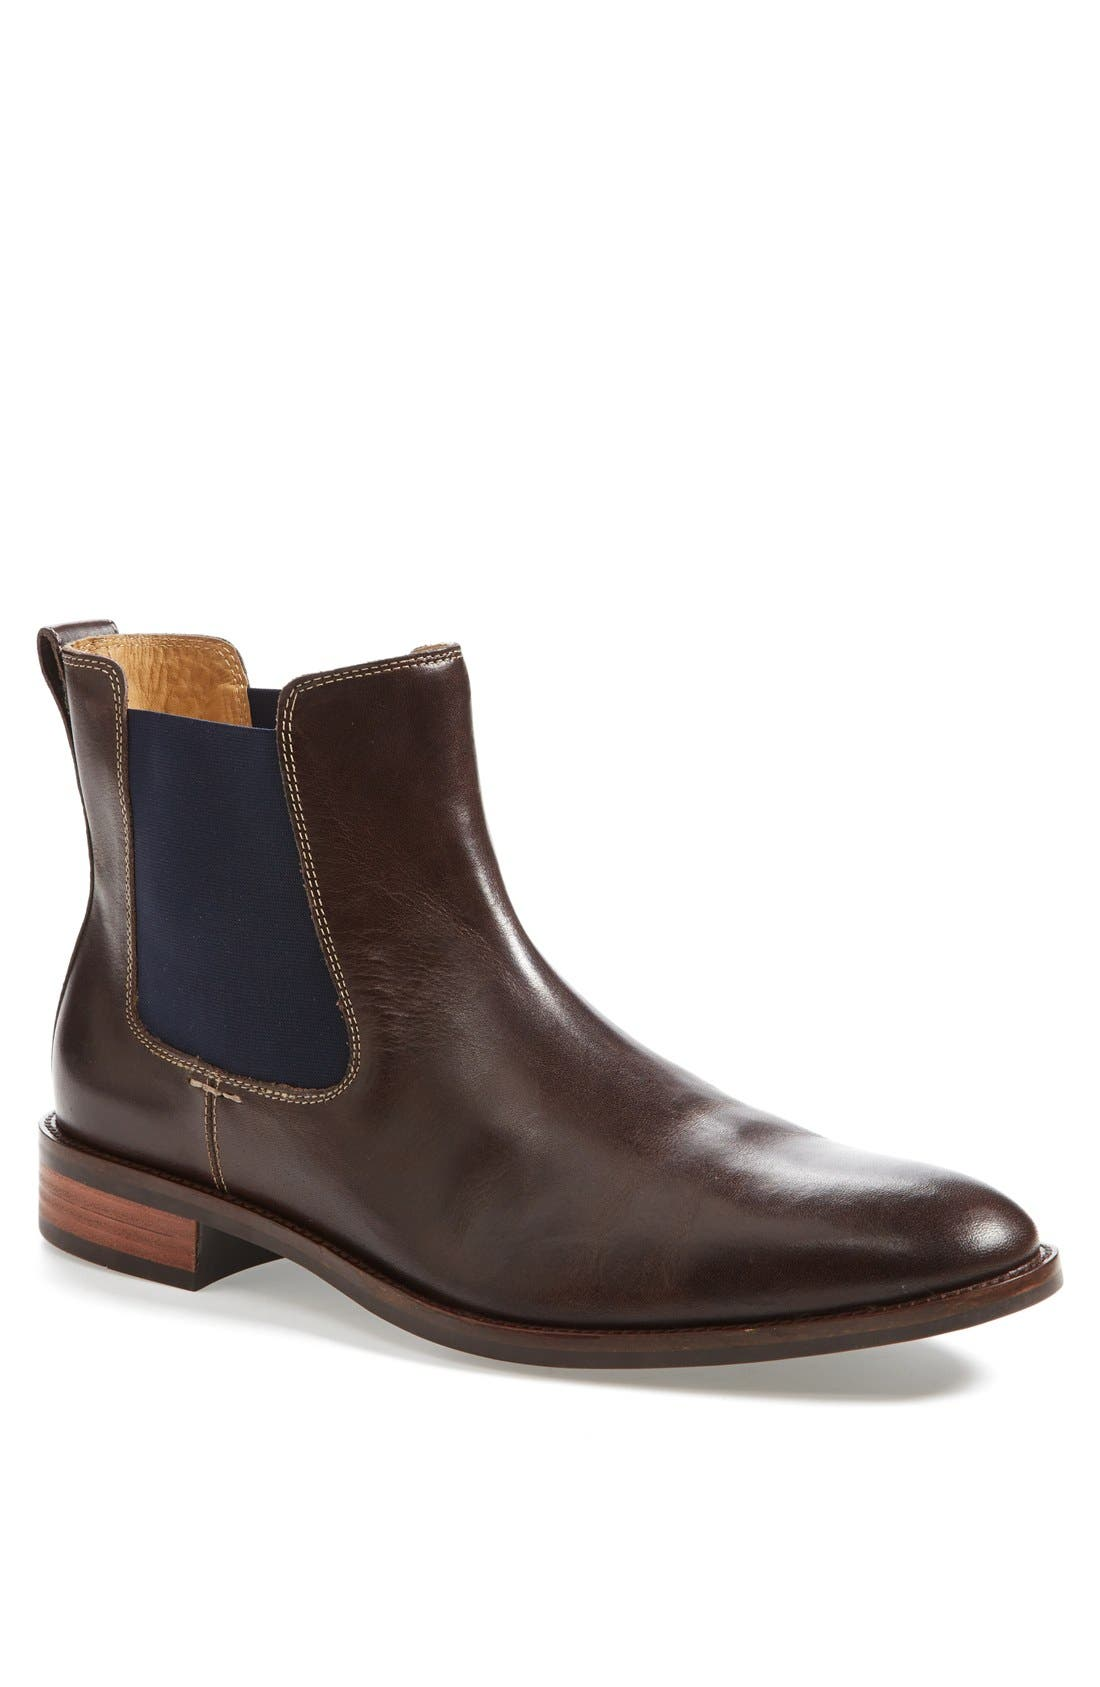 Main Image - Cole Haan 'Lenox Hill' Chelsea Boot (Men)